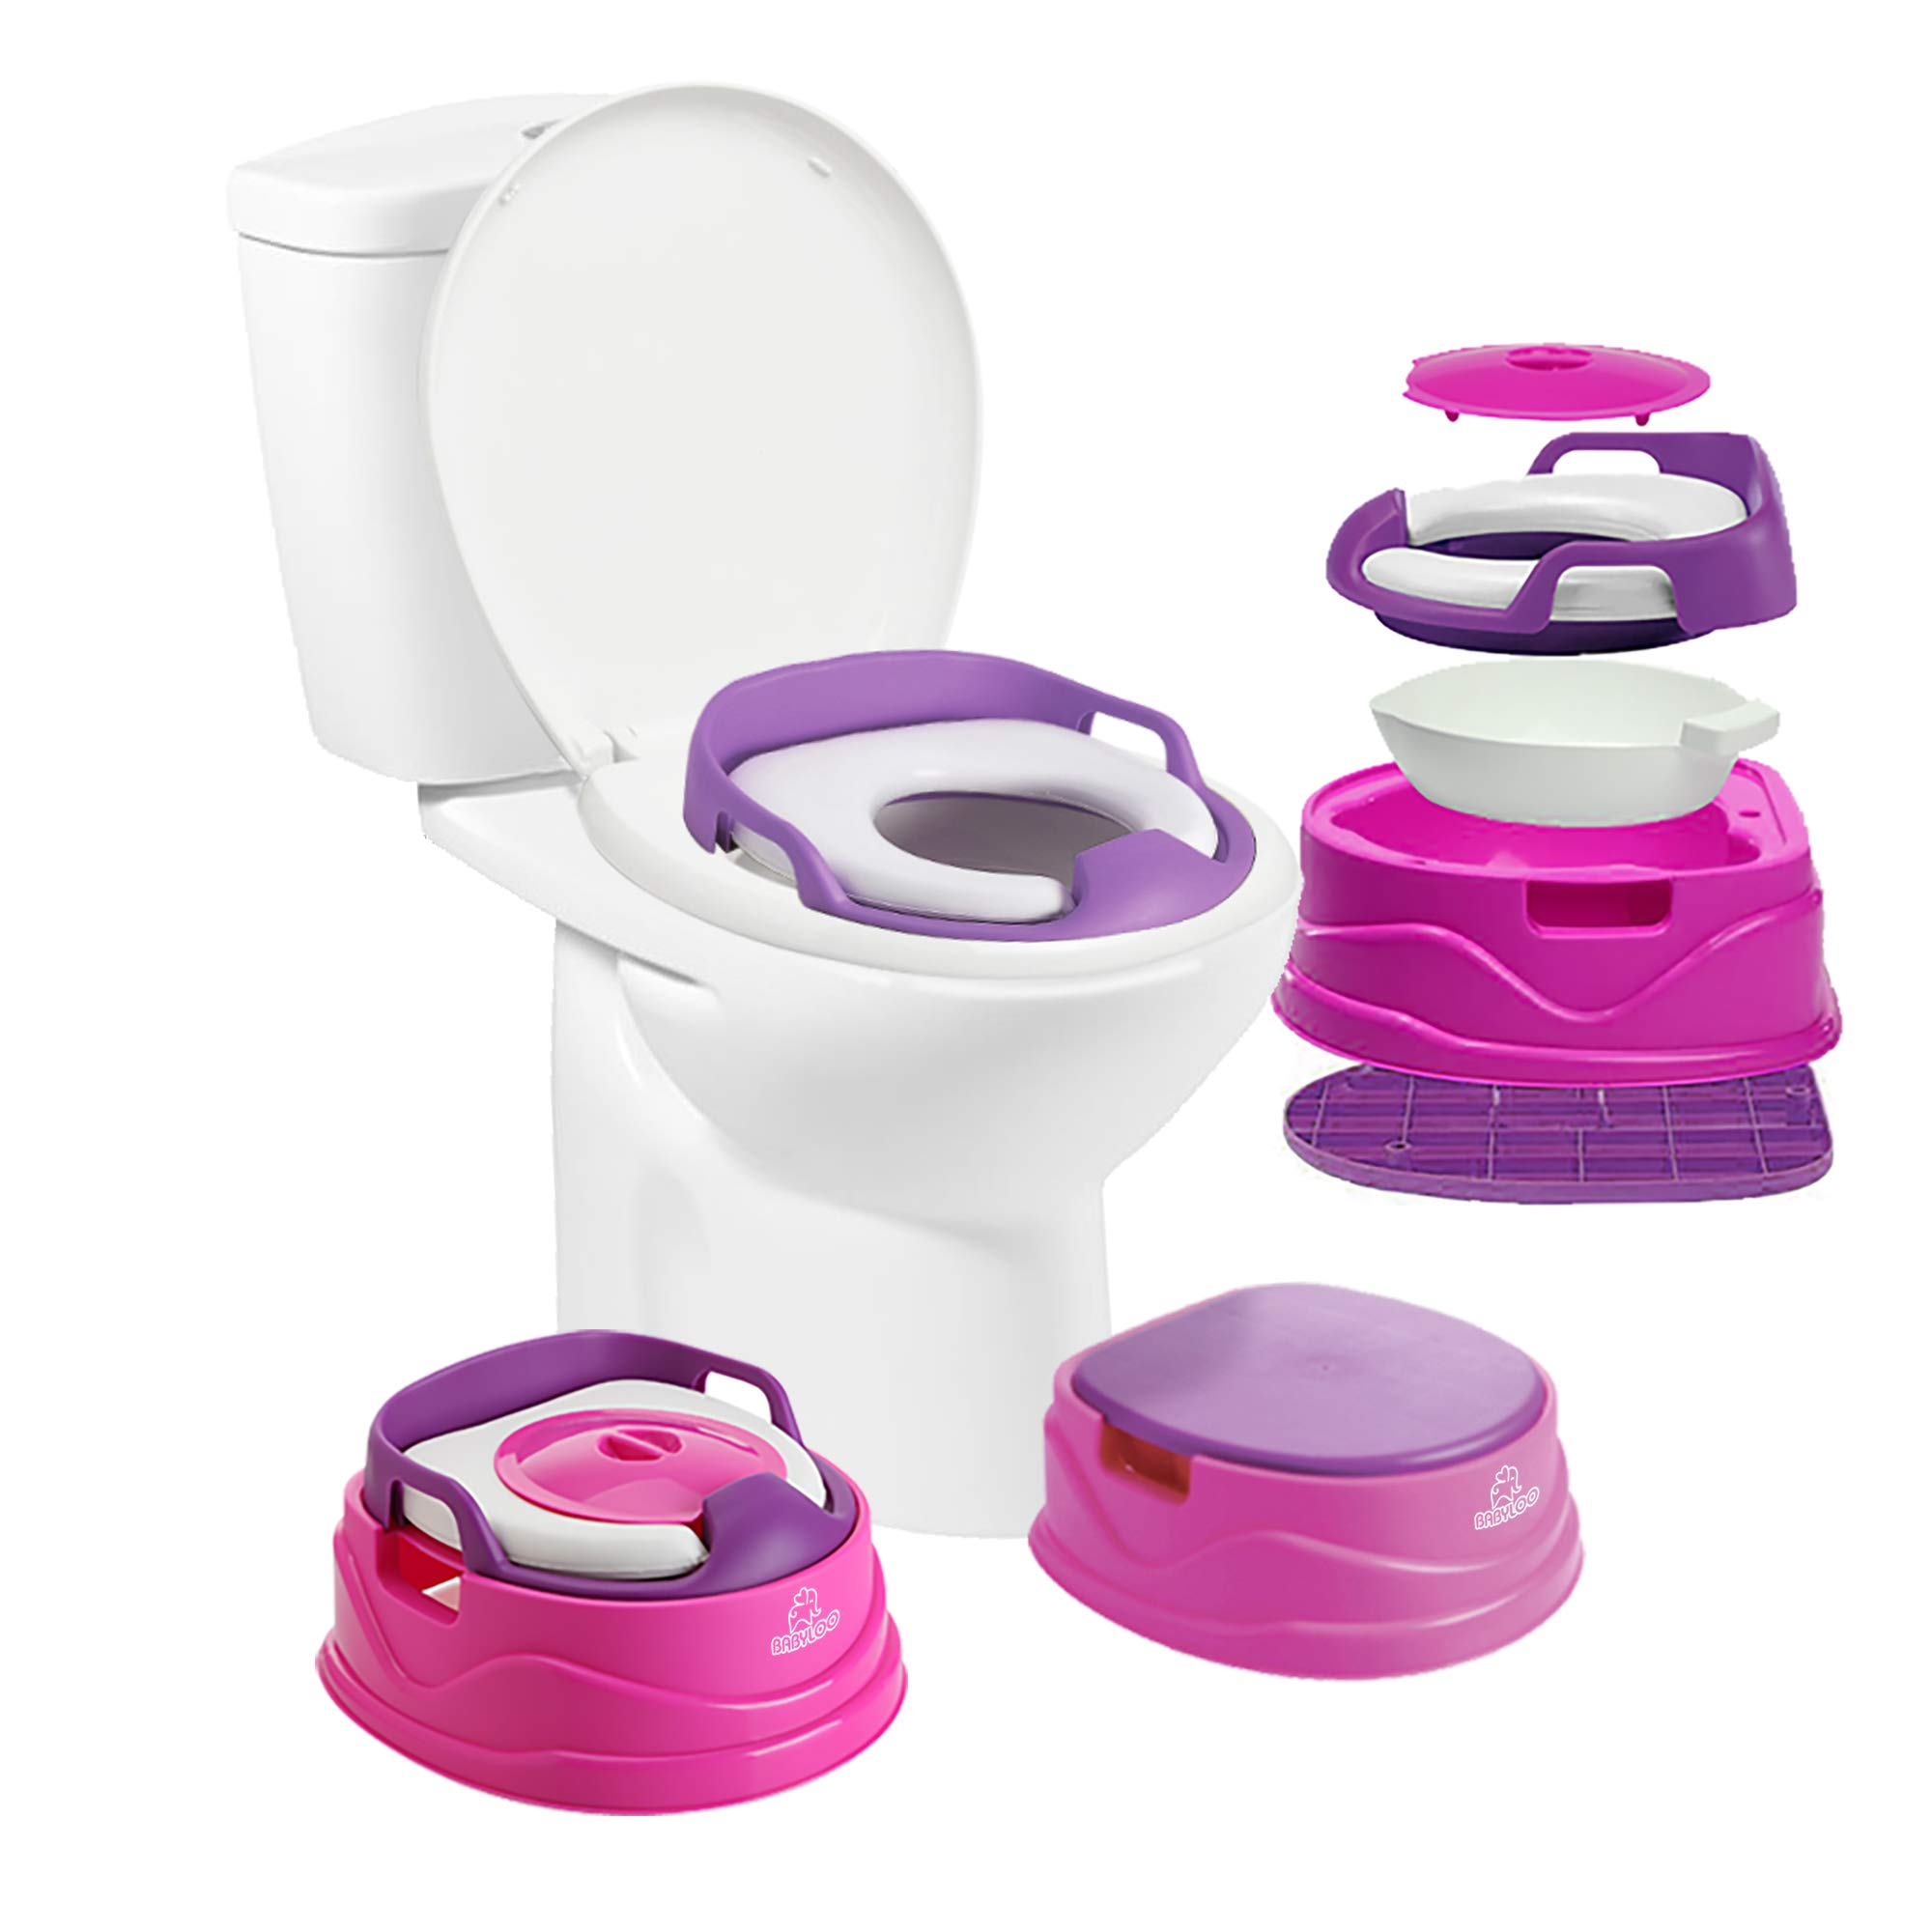 Babyloo Bambino Potty 3-in-1 Multi-Functional Children's Toilet Training Seat - 3 Convertible Stages for 6 Months and up (Pink)